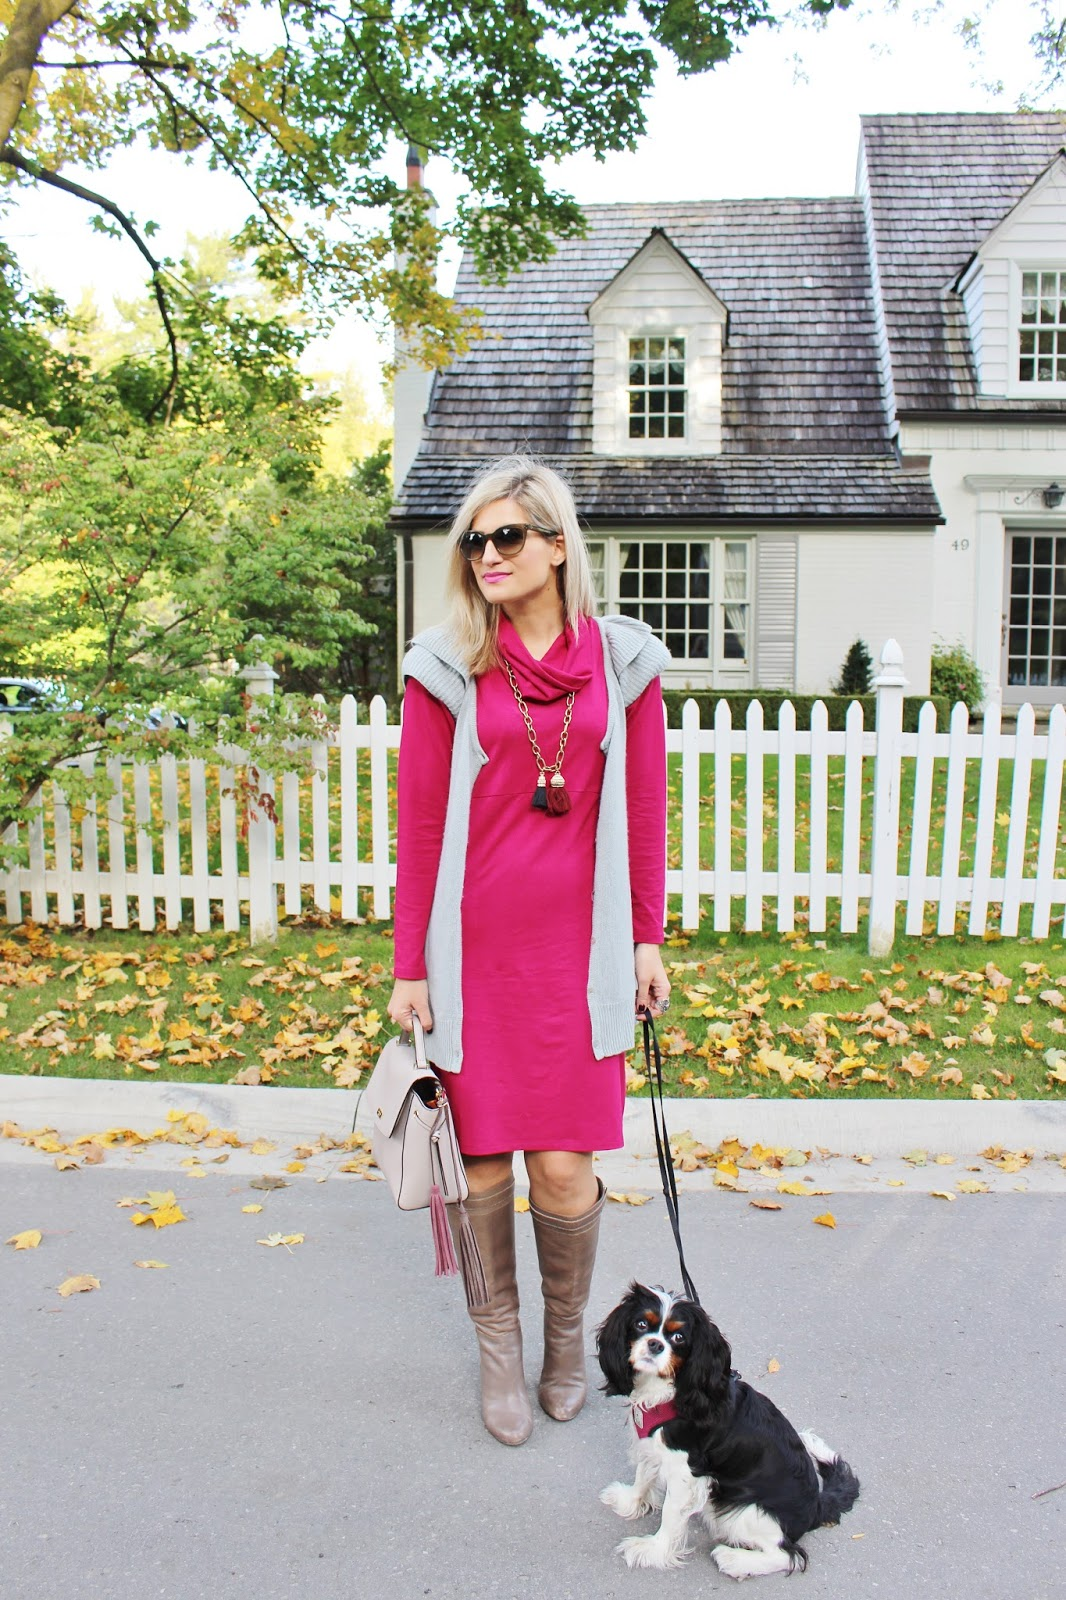 Bijuleni - Miik Cowl Pocket Cranberry Dress with Grey Sweater Vest, Ann Taylor Ankle Boots, Kate Spade handbag and Cavalier puppy